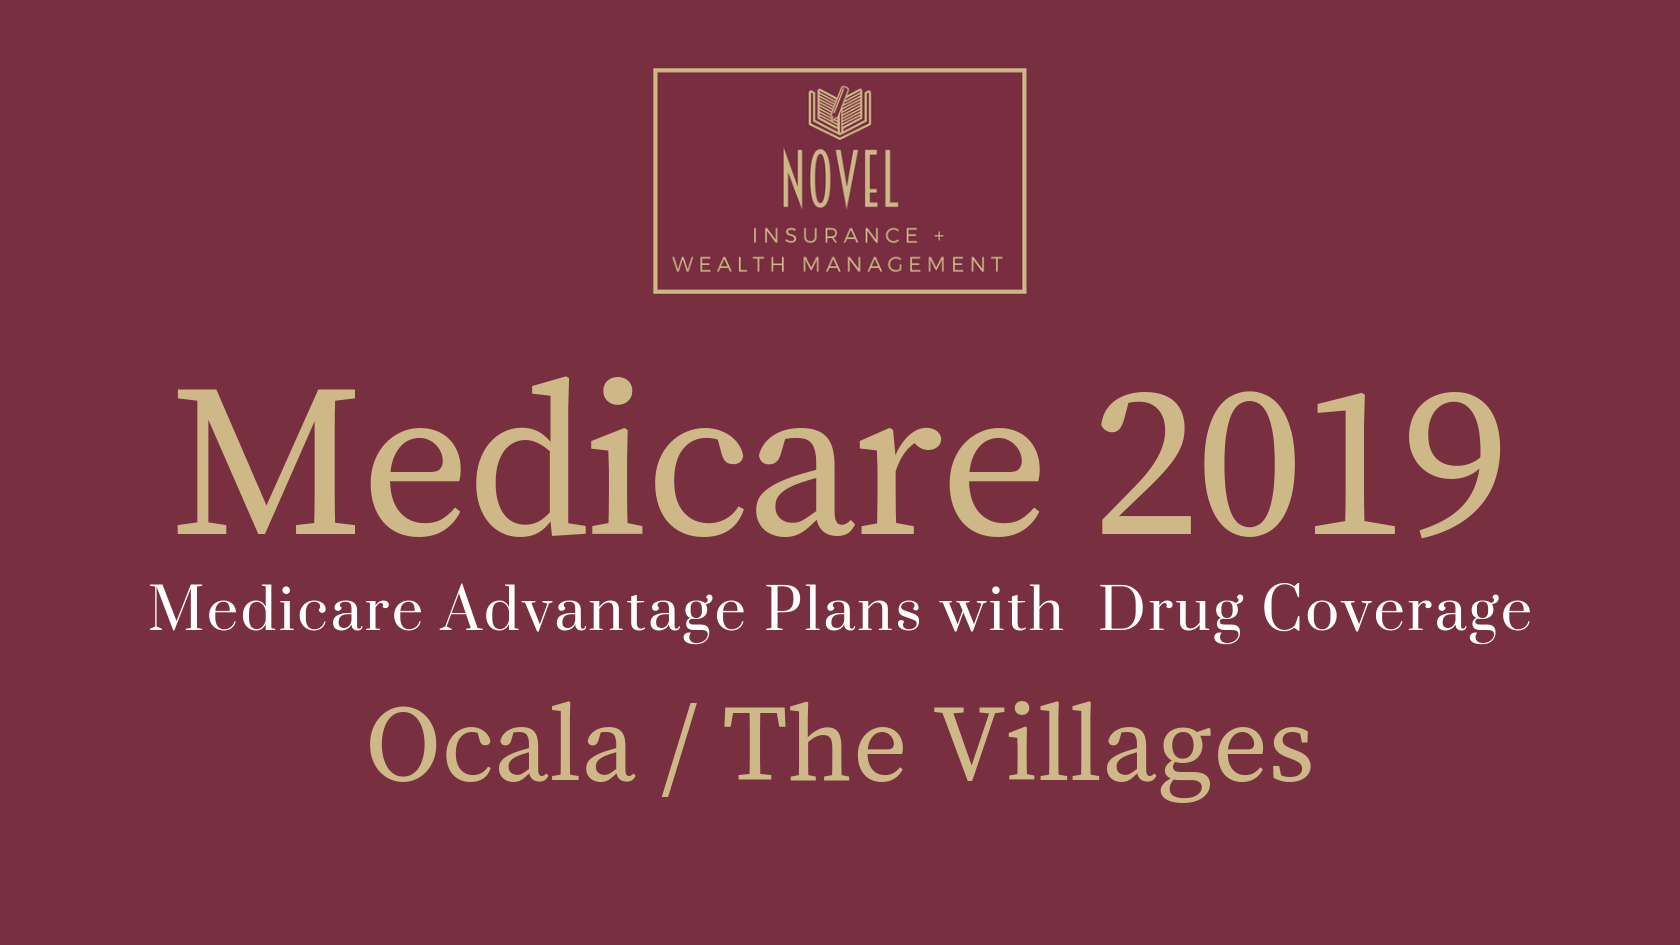 Medicare 2019 Ocala _ The Villages.png